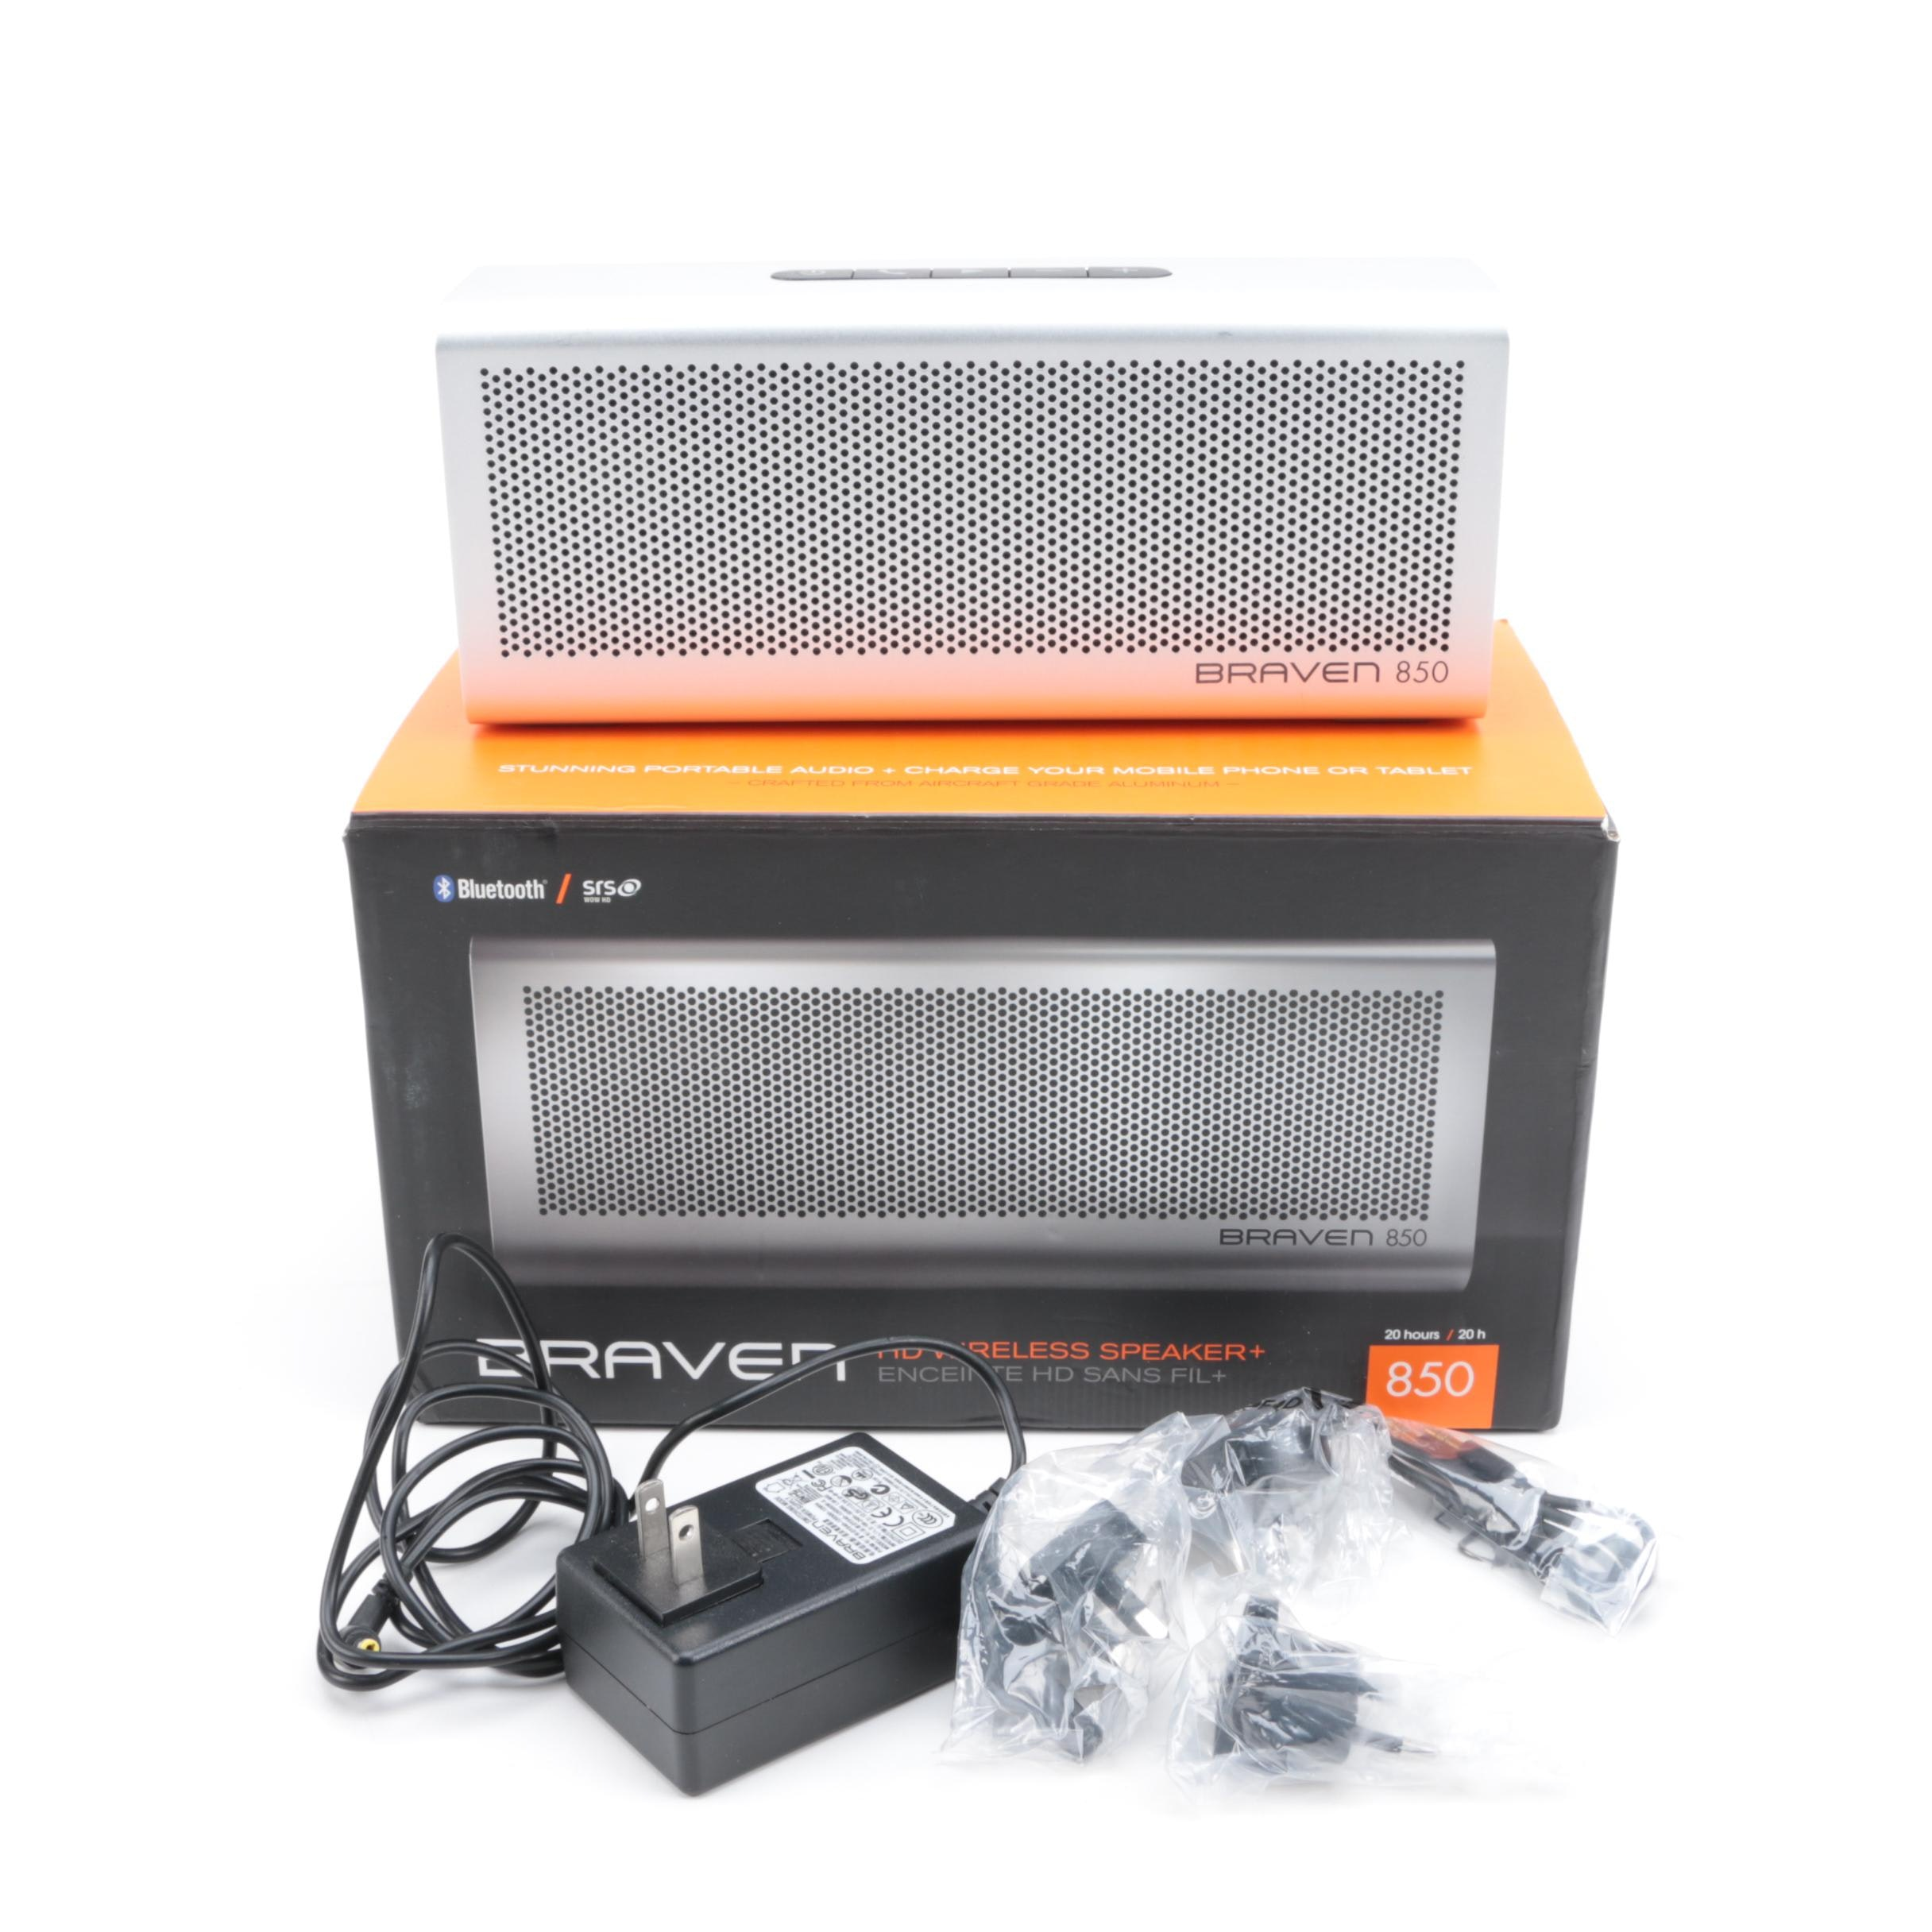 BRAVEN 850 Portable Wireless Bluetooth Speaker and Docking Station